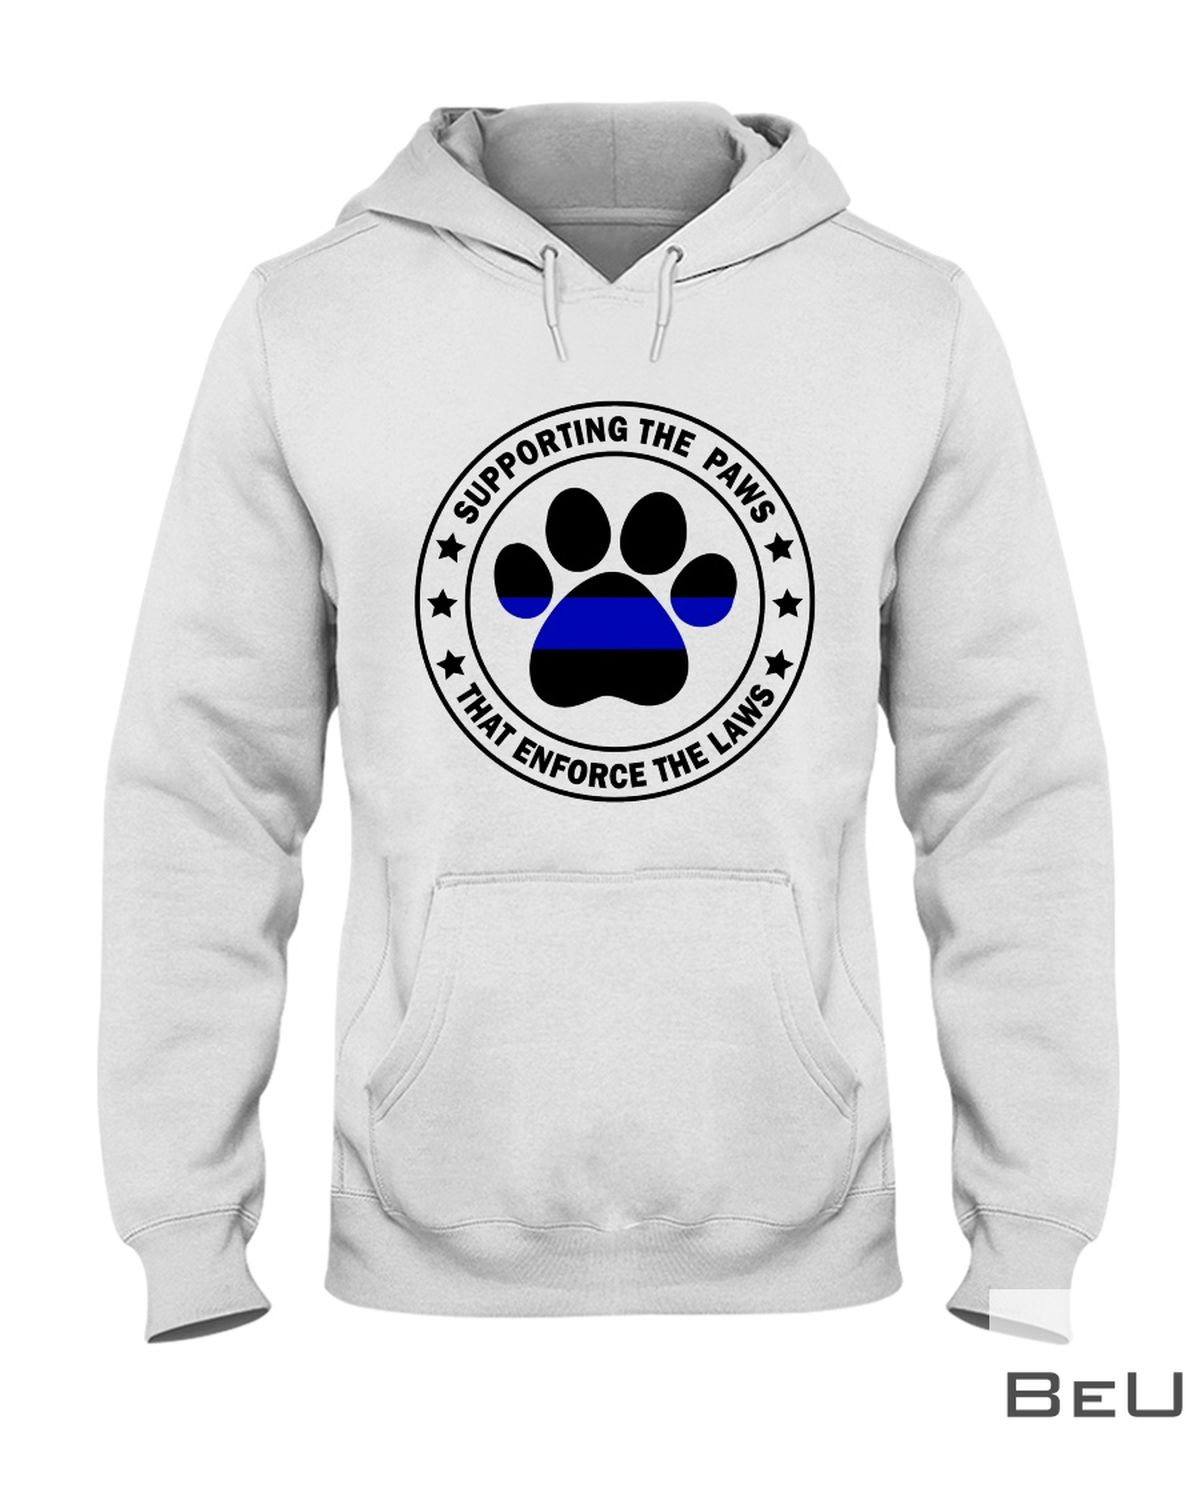 Supporting The Paws That Enforce Th Laws Shirt z